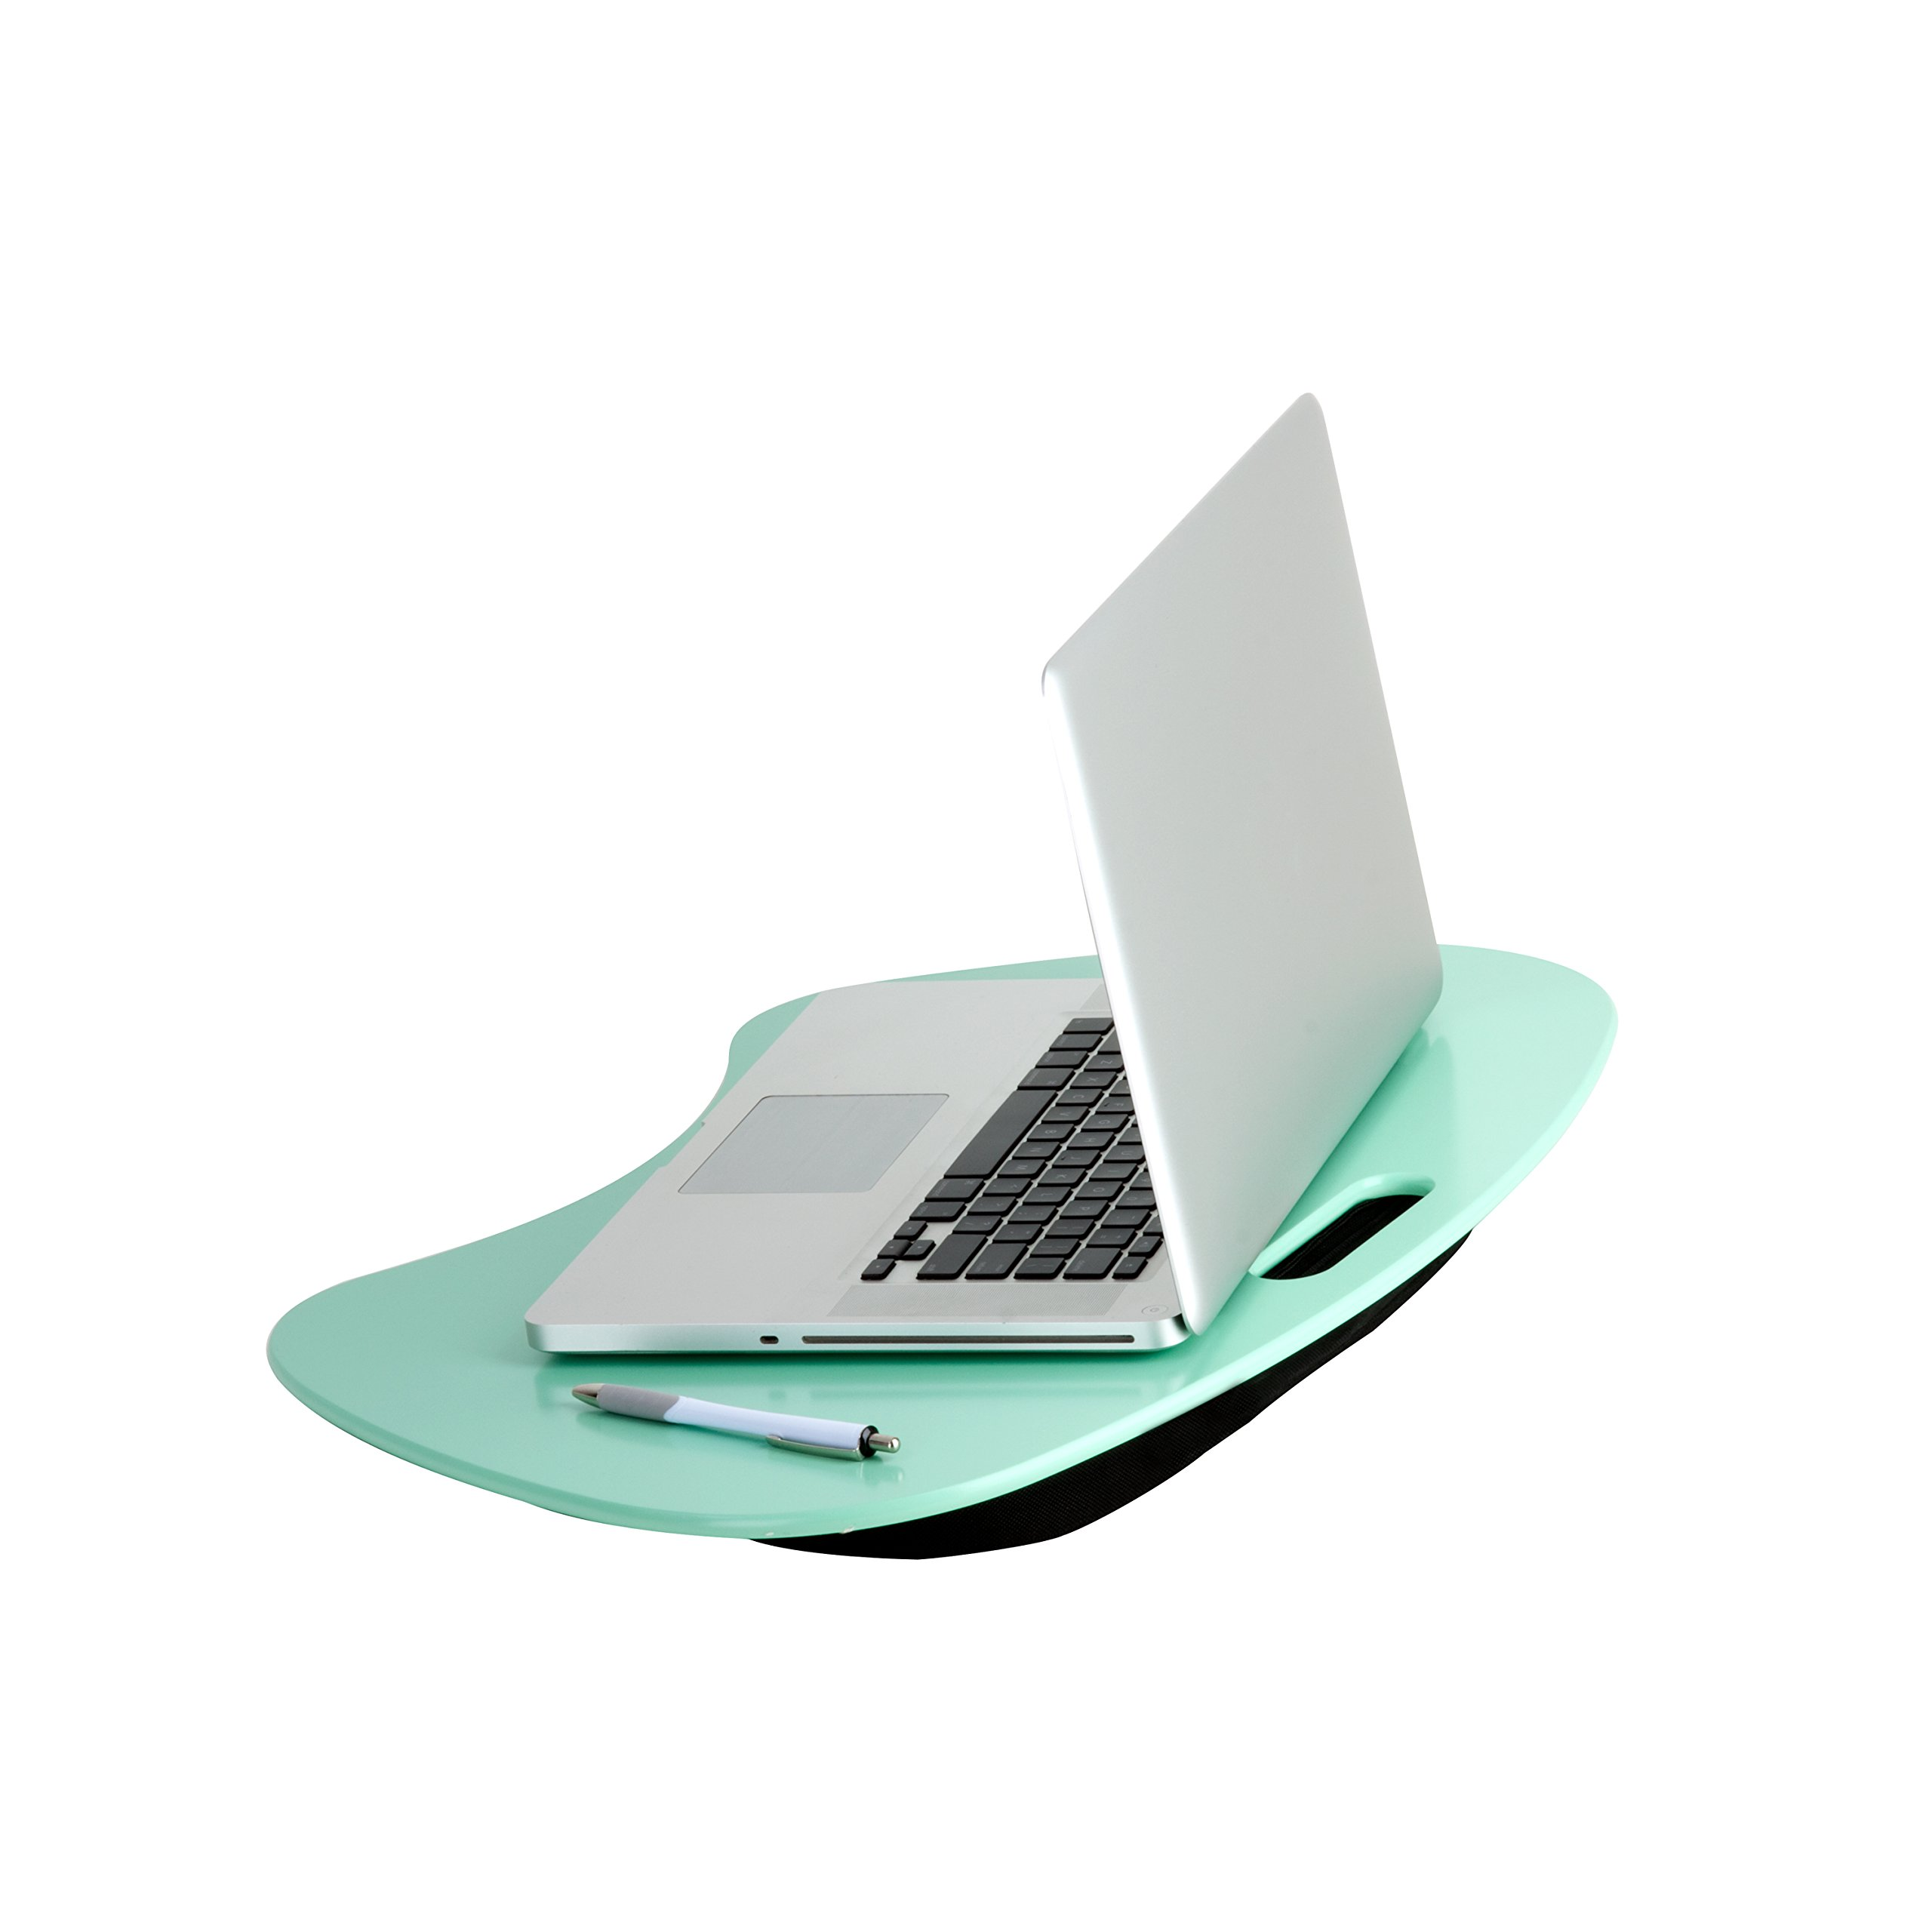 Honey-Can-Do TBL-03540 Portable Laptop Lap Desk with Handle, Mint, 23 L x 16 W x 2.5 H by Honey-Can-Do